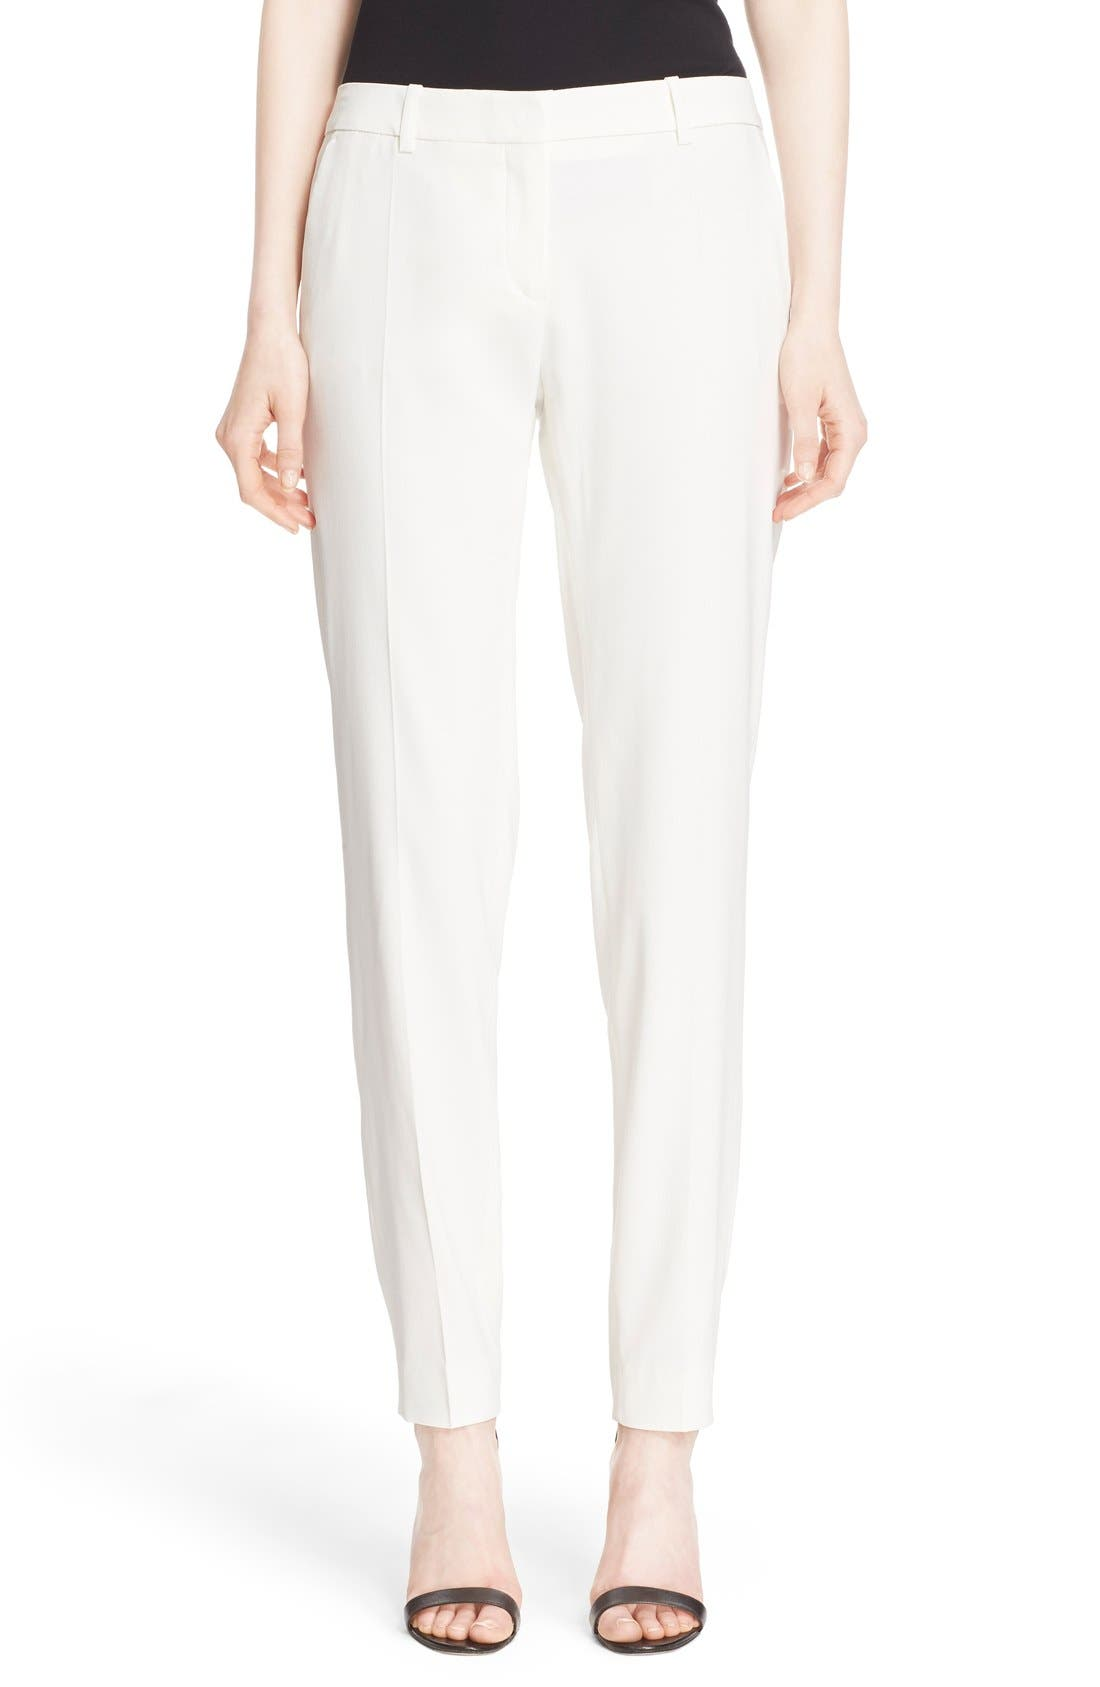 Alternate Image 1 Selected - The Kooples Stretch Crepe Ankle Pants